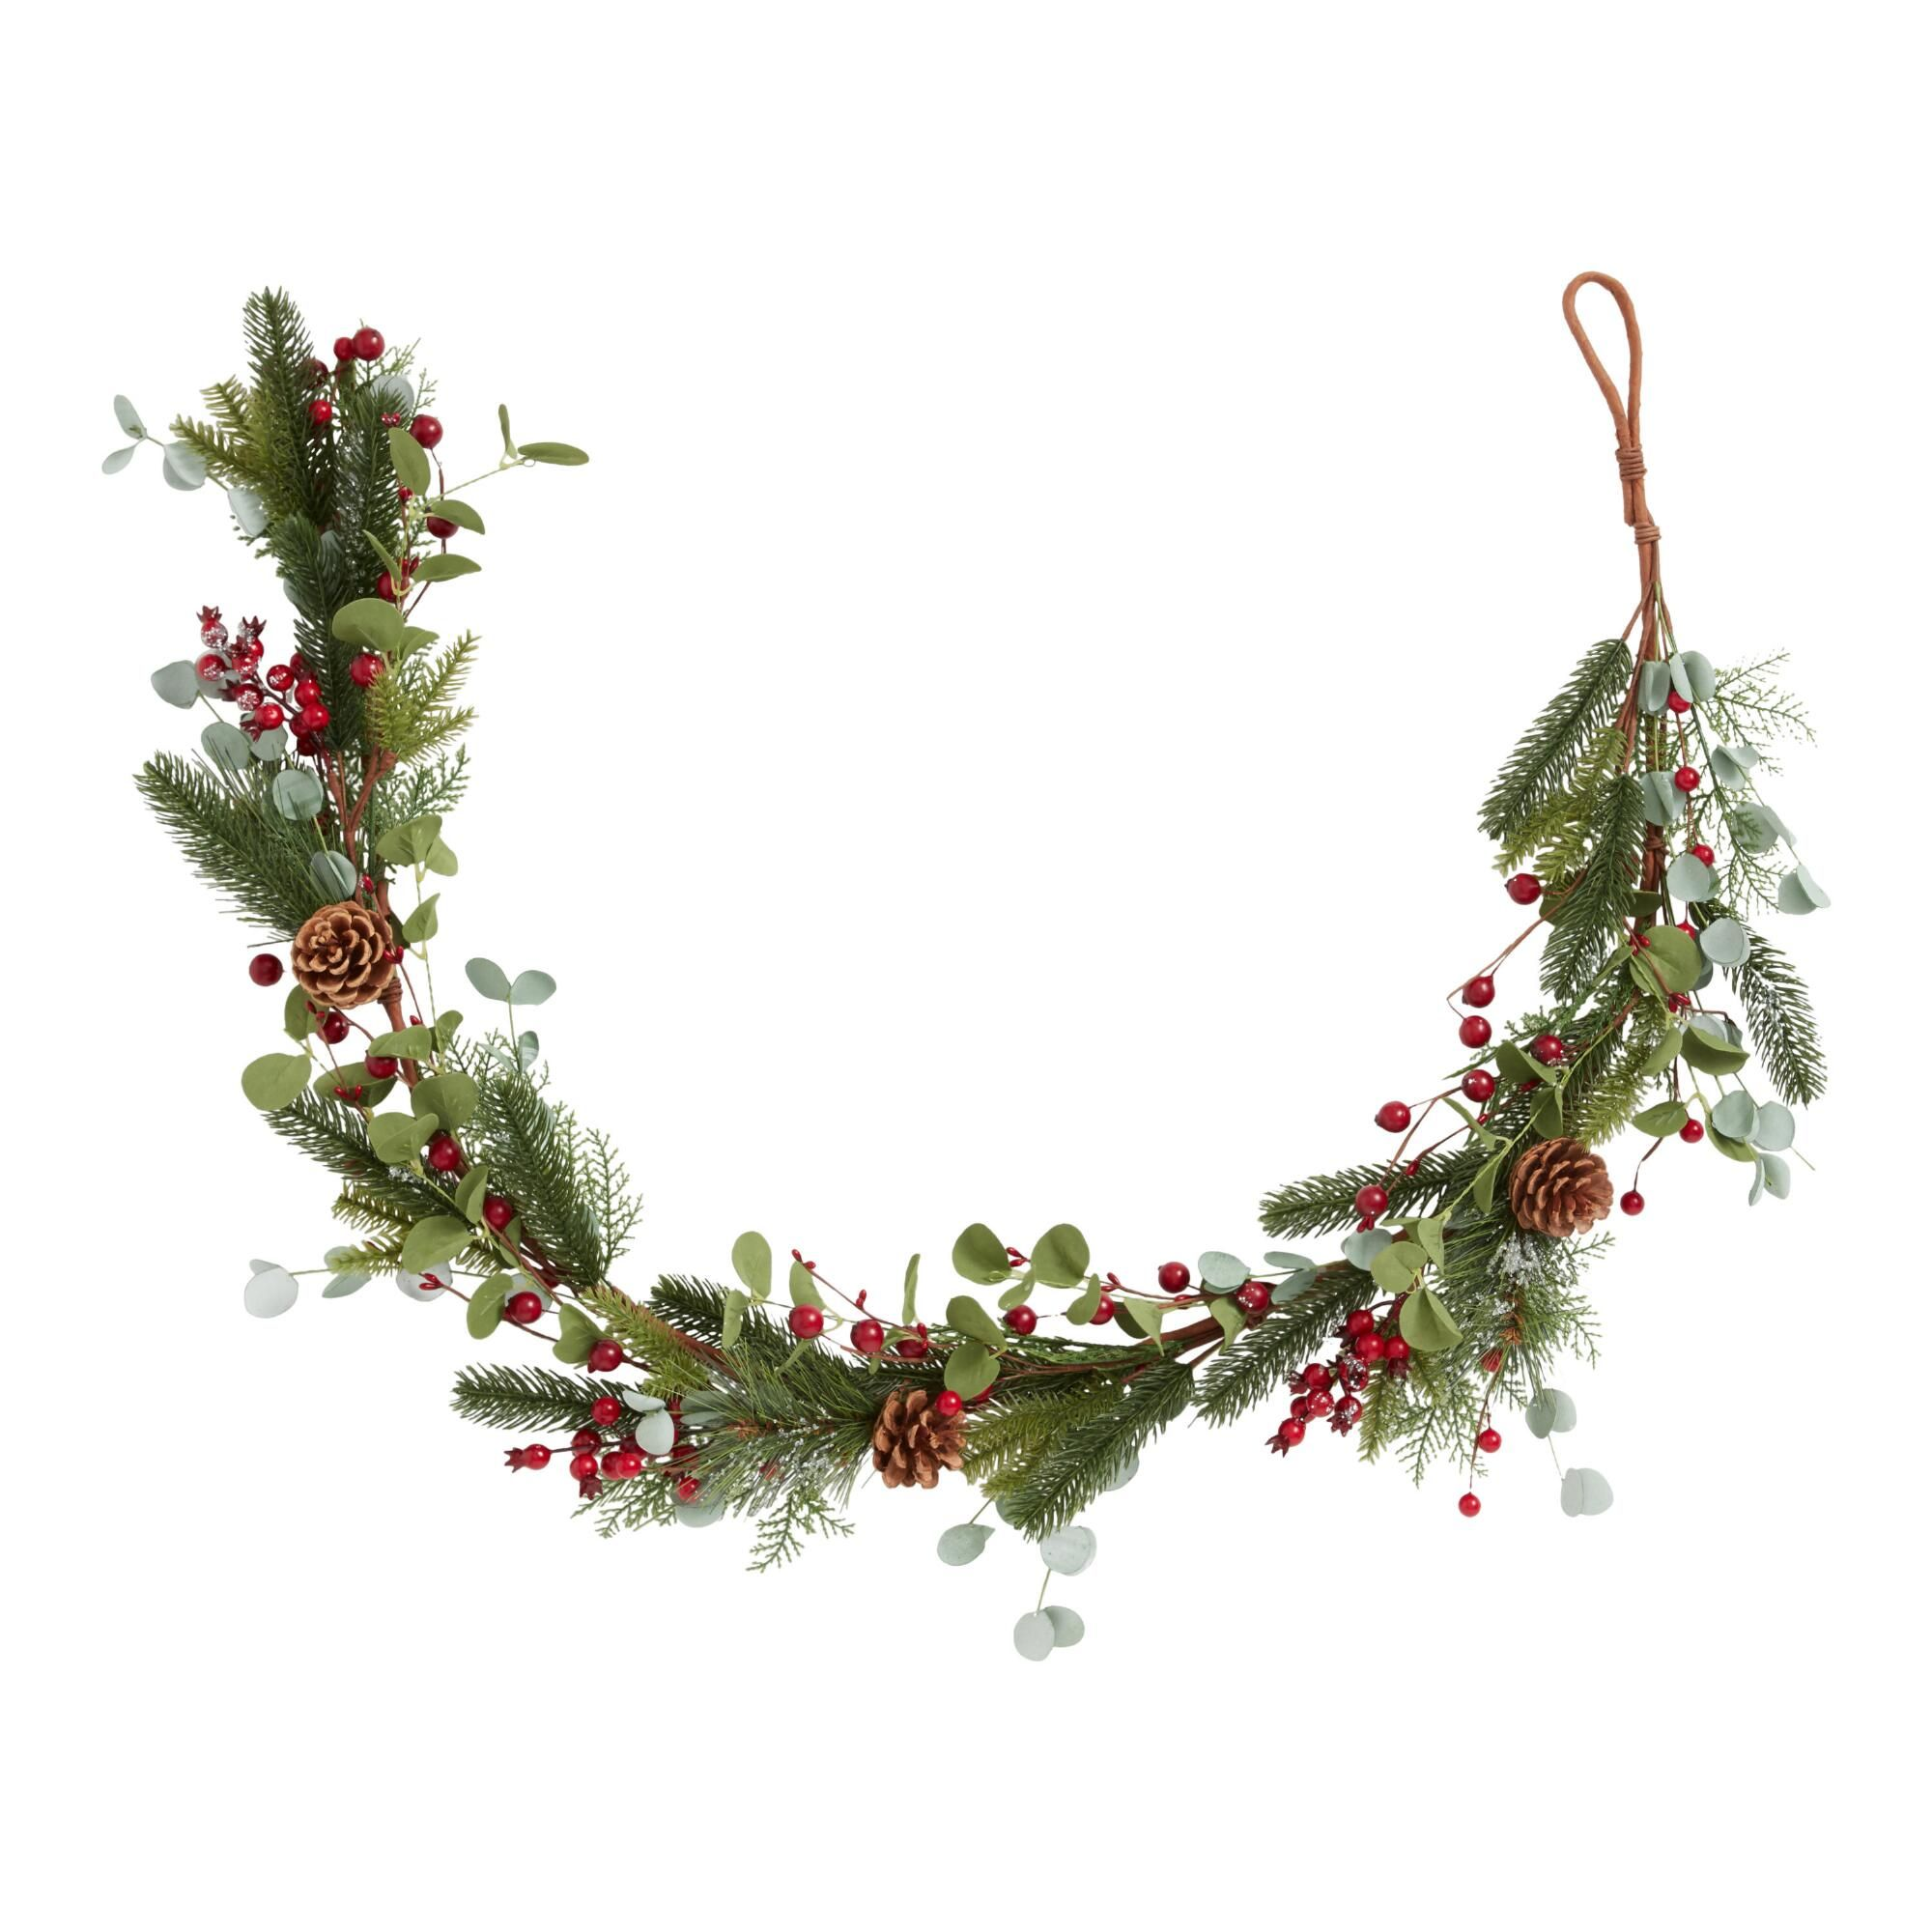 Wreaths -Wildly lush and classically festive, our holiday garland is festooned with sprays of faux eucalyptus, frosted pine, red berries and real pinecones. Material: Plastic, Color:Multi. Also could be used for seasonal,gifts,home decor,decor,christmas decor,holiday decor,christmas decorations,holiday decorations,decorations,hanging decor,wall decor,ornament,holiday,christmas,xmas,holiday garland,porch decor,mantel decor,mantle decor,homestead holiday. By Cost Plus World Market.593938